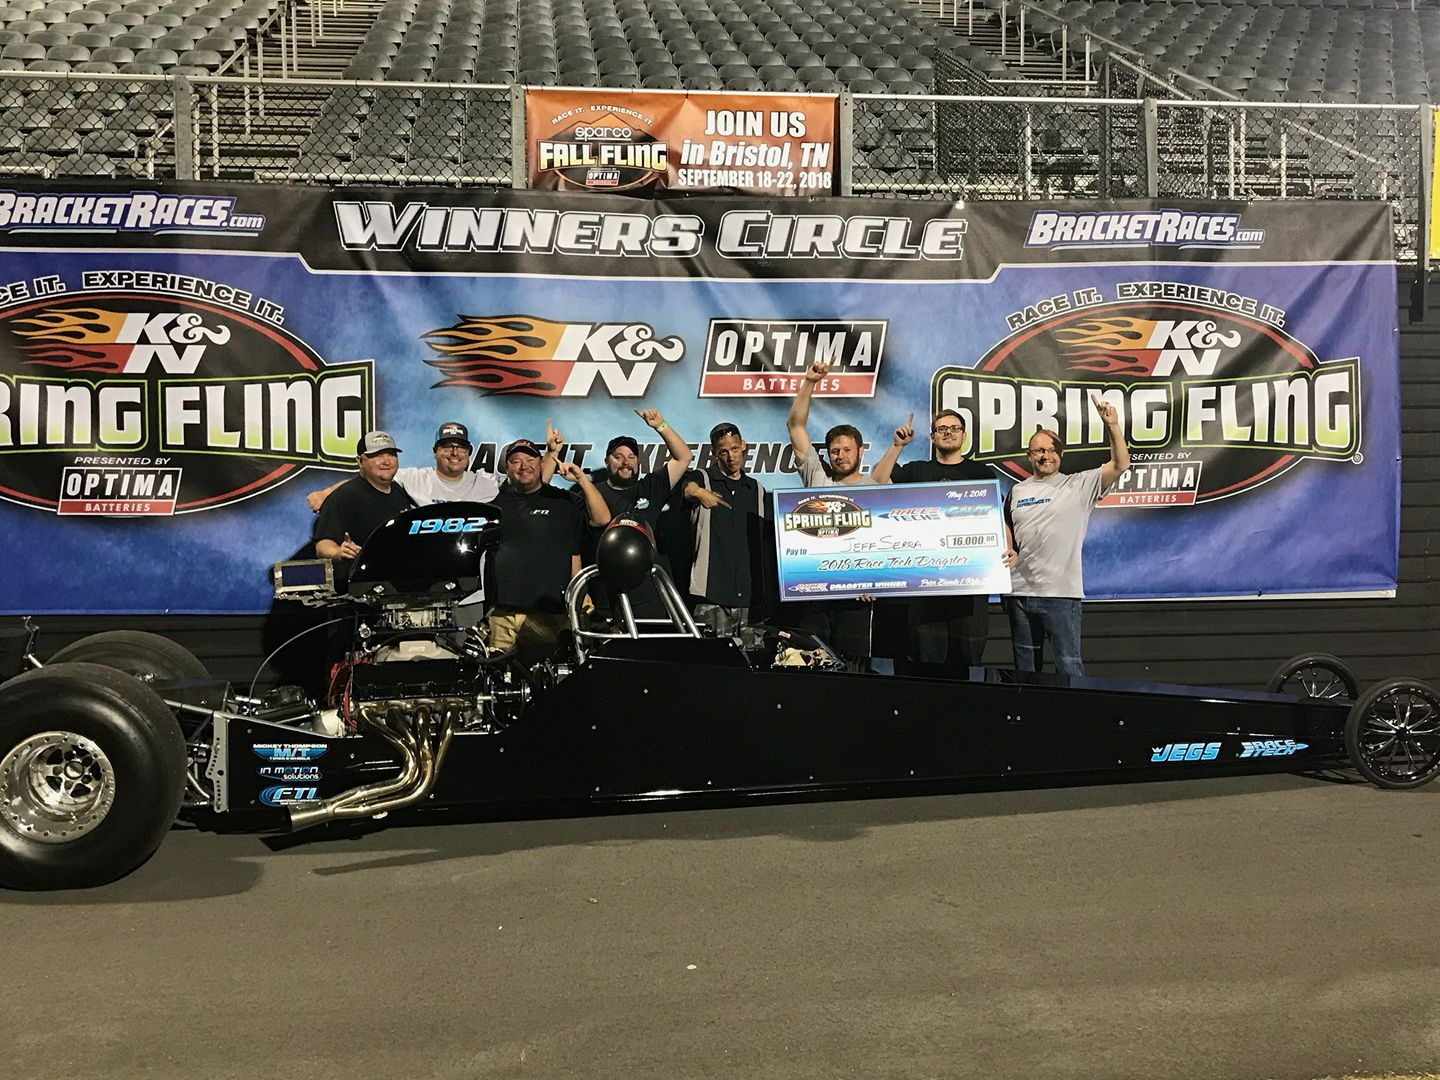 Jeff Serra Wins Spring Fling Dragster Shootout